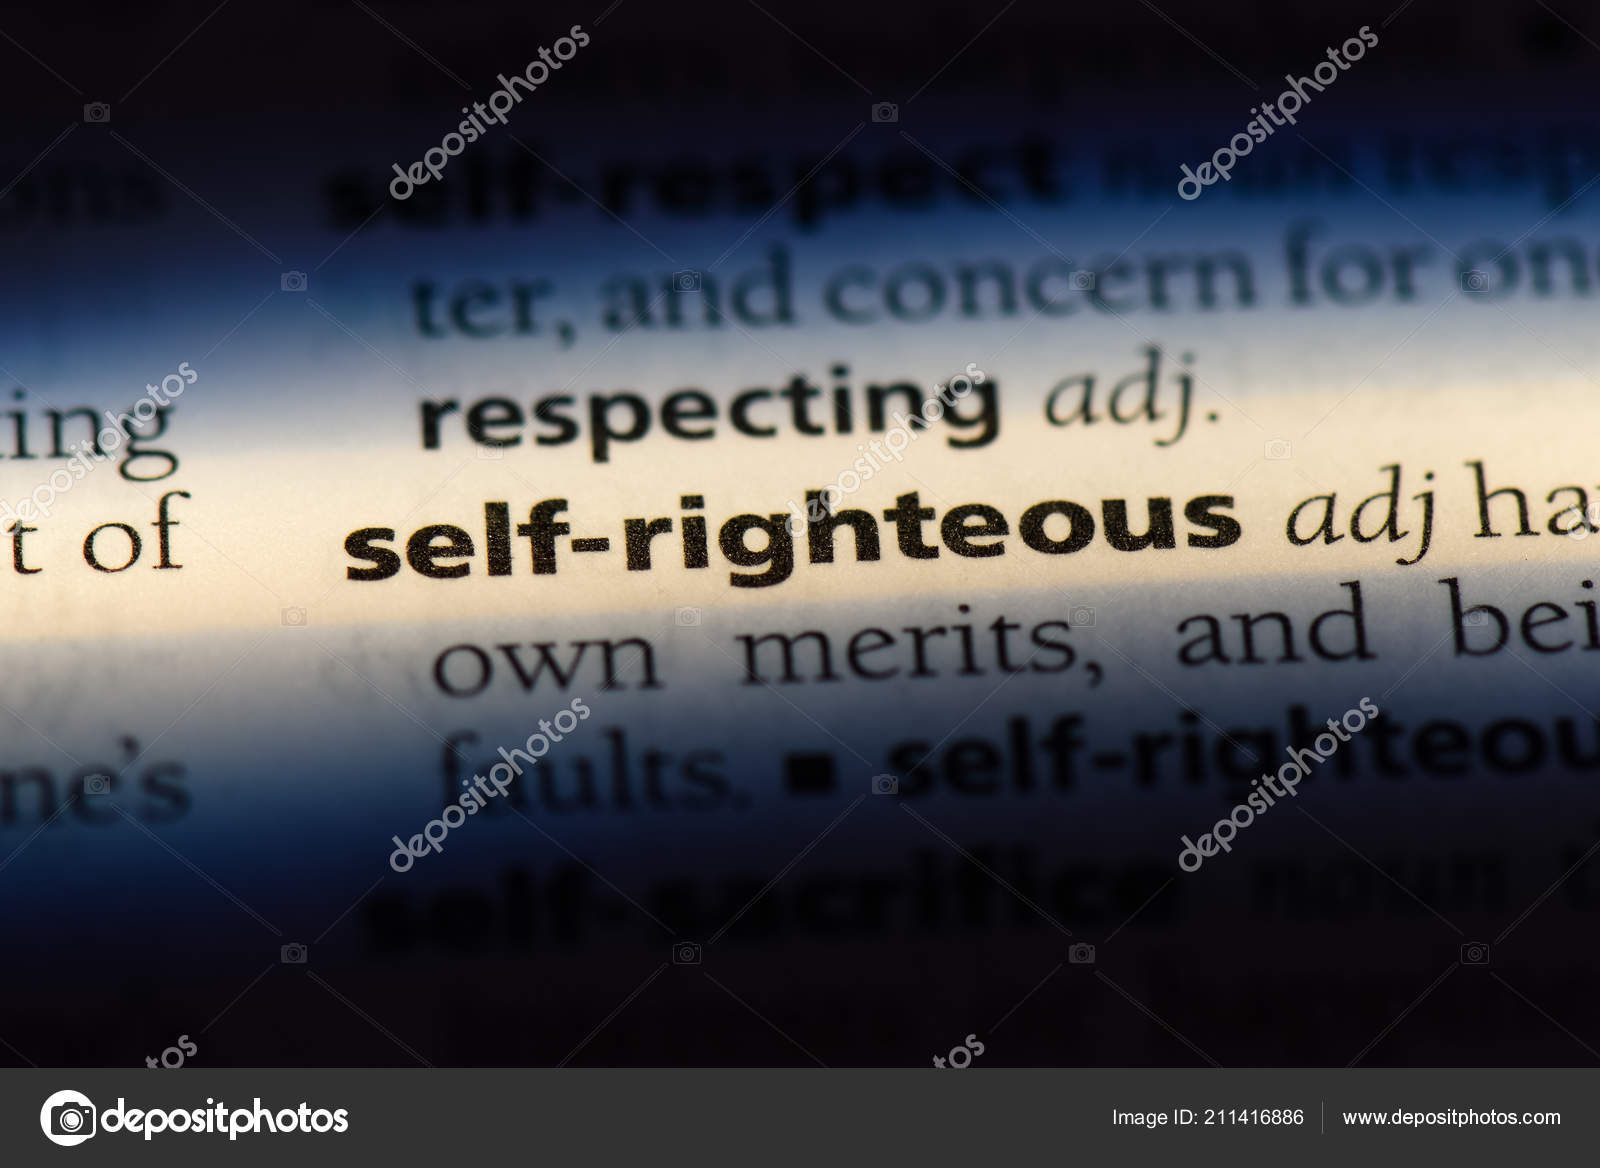 ᐈ Hoverboard wallpaper stock images, Royalty Free self righteous photos |  download on Depositphotos®